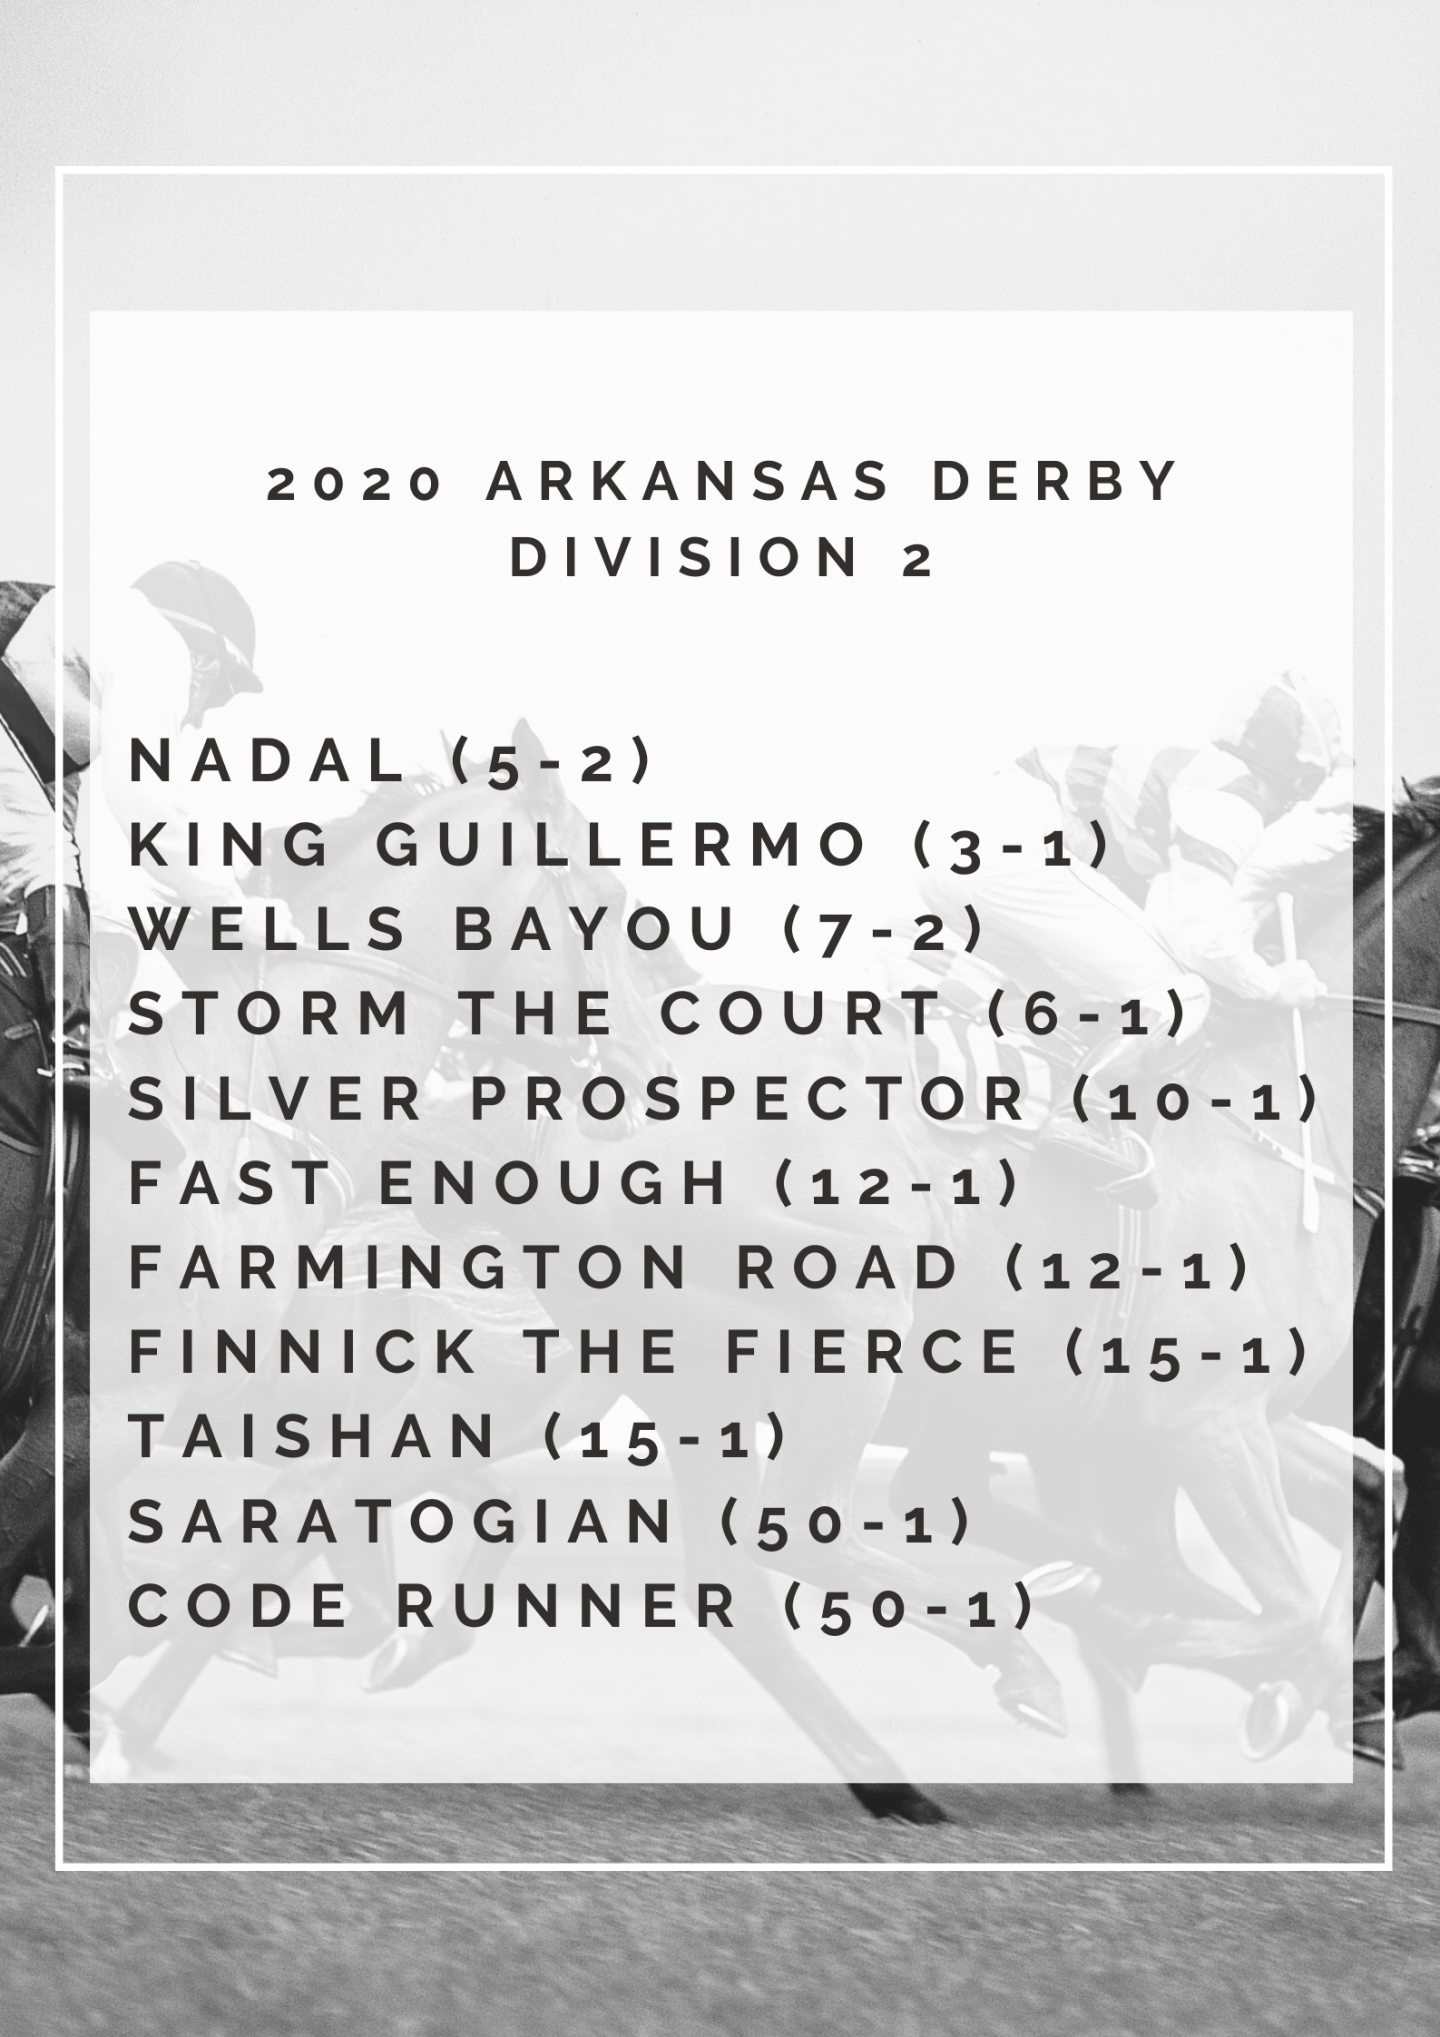 Arkansas Derby Division 2